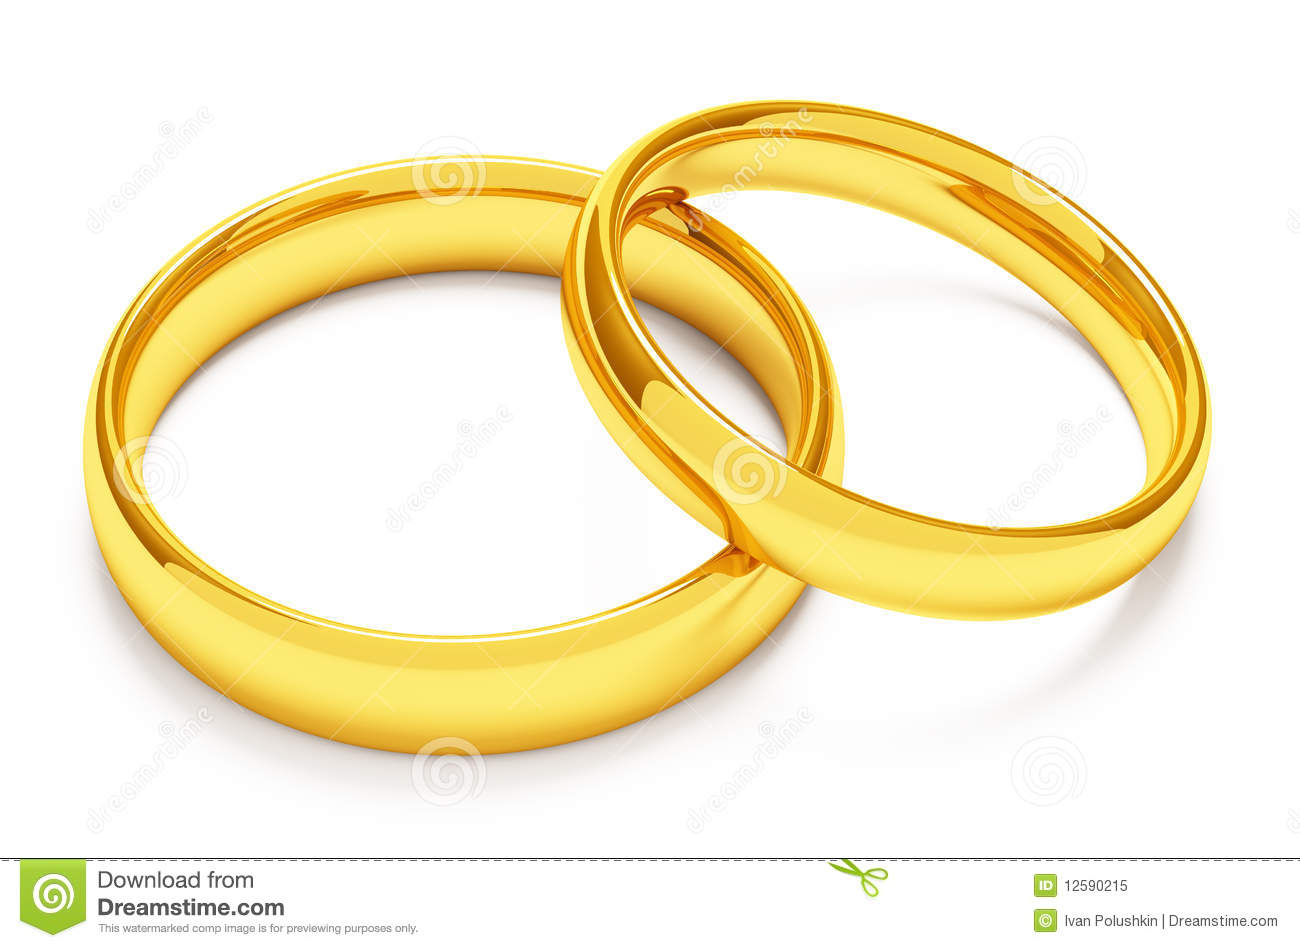 Two Gold Wedding Rings Royalty Free Stock Photo - Image: 12590215